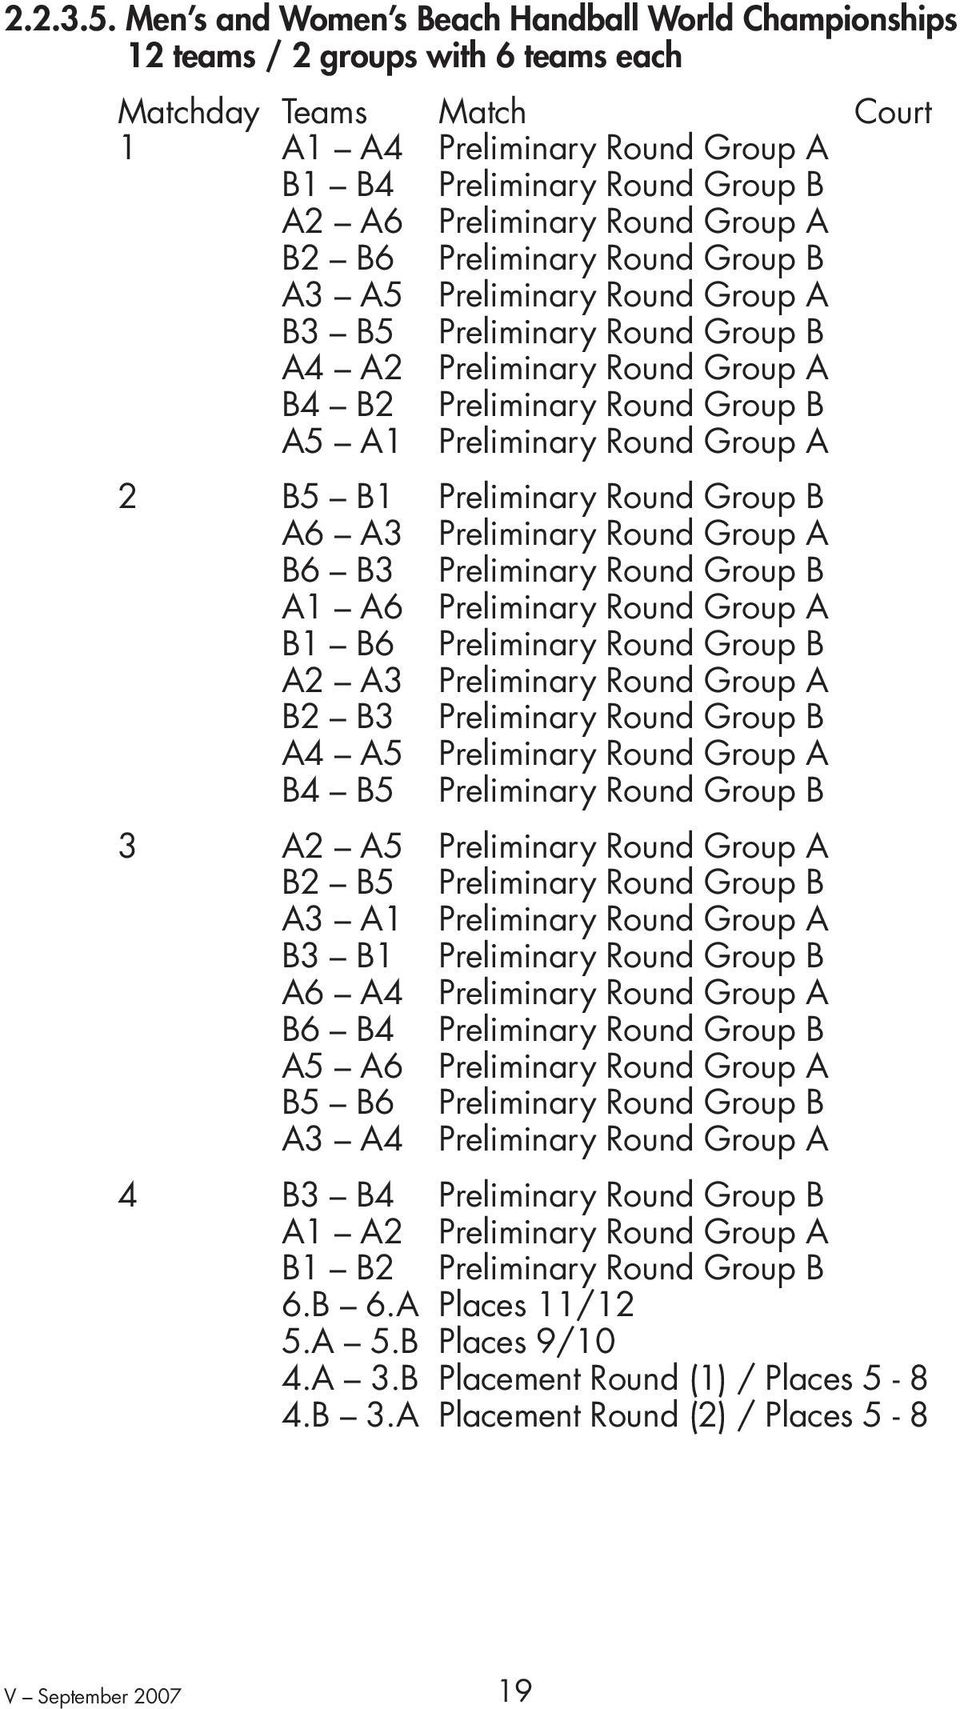 Preliminary Round Group A B2 B6 Preliminary Round Group B A3 A5 Preliminary Round Group A B3 B5 Preliminary Round Group B A4 A2 Preliminary Round Group A B4 B2 Preliminary Round Group B A5 A1